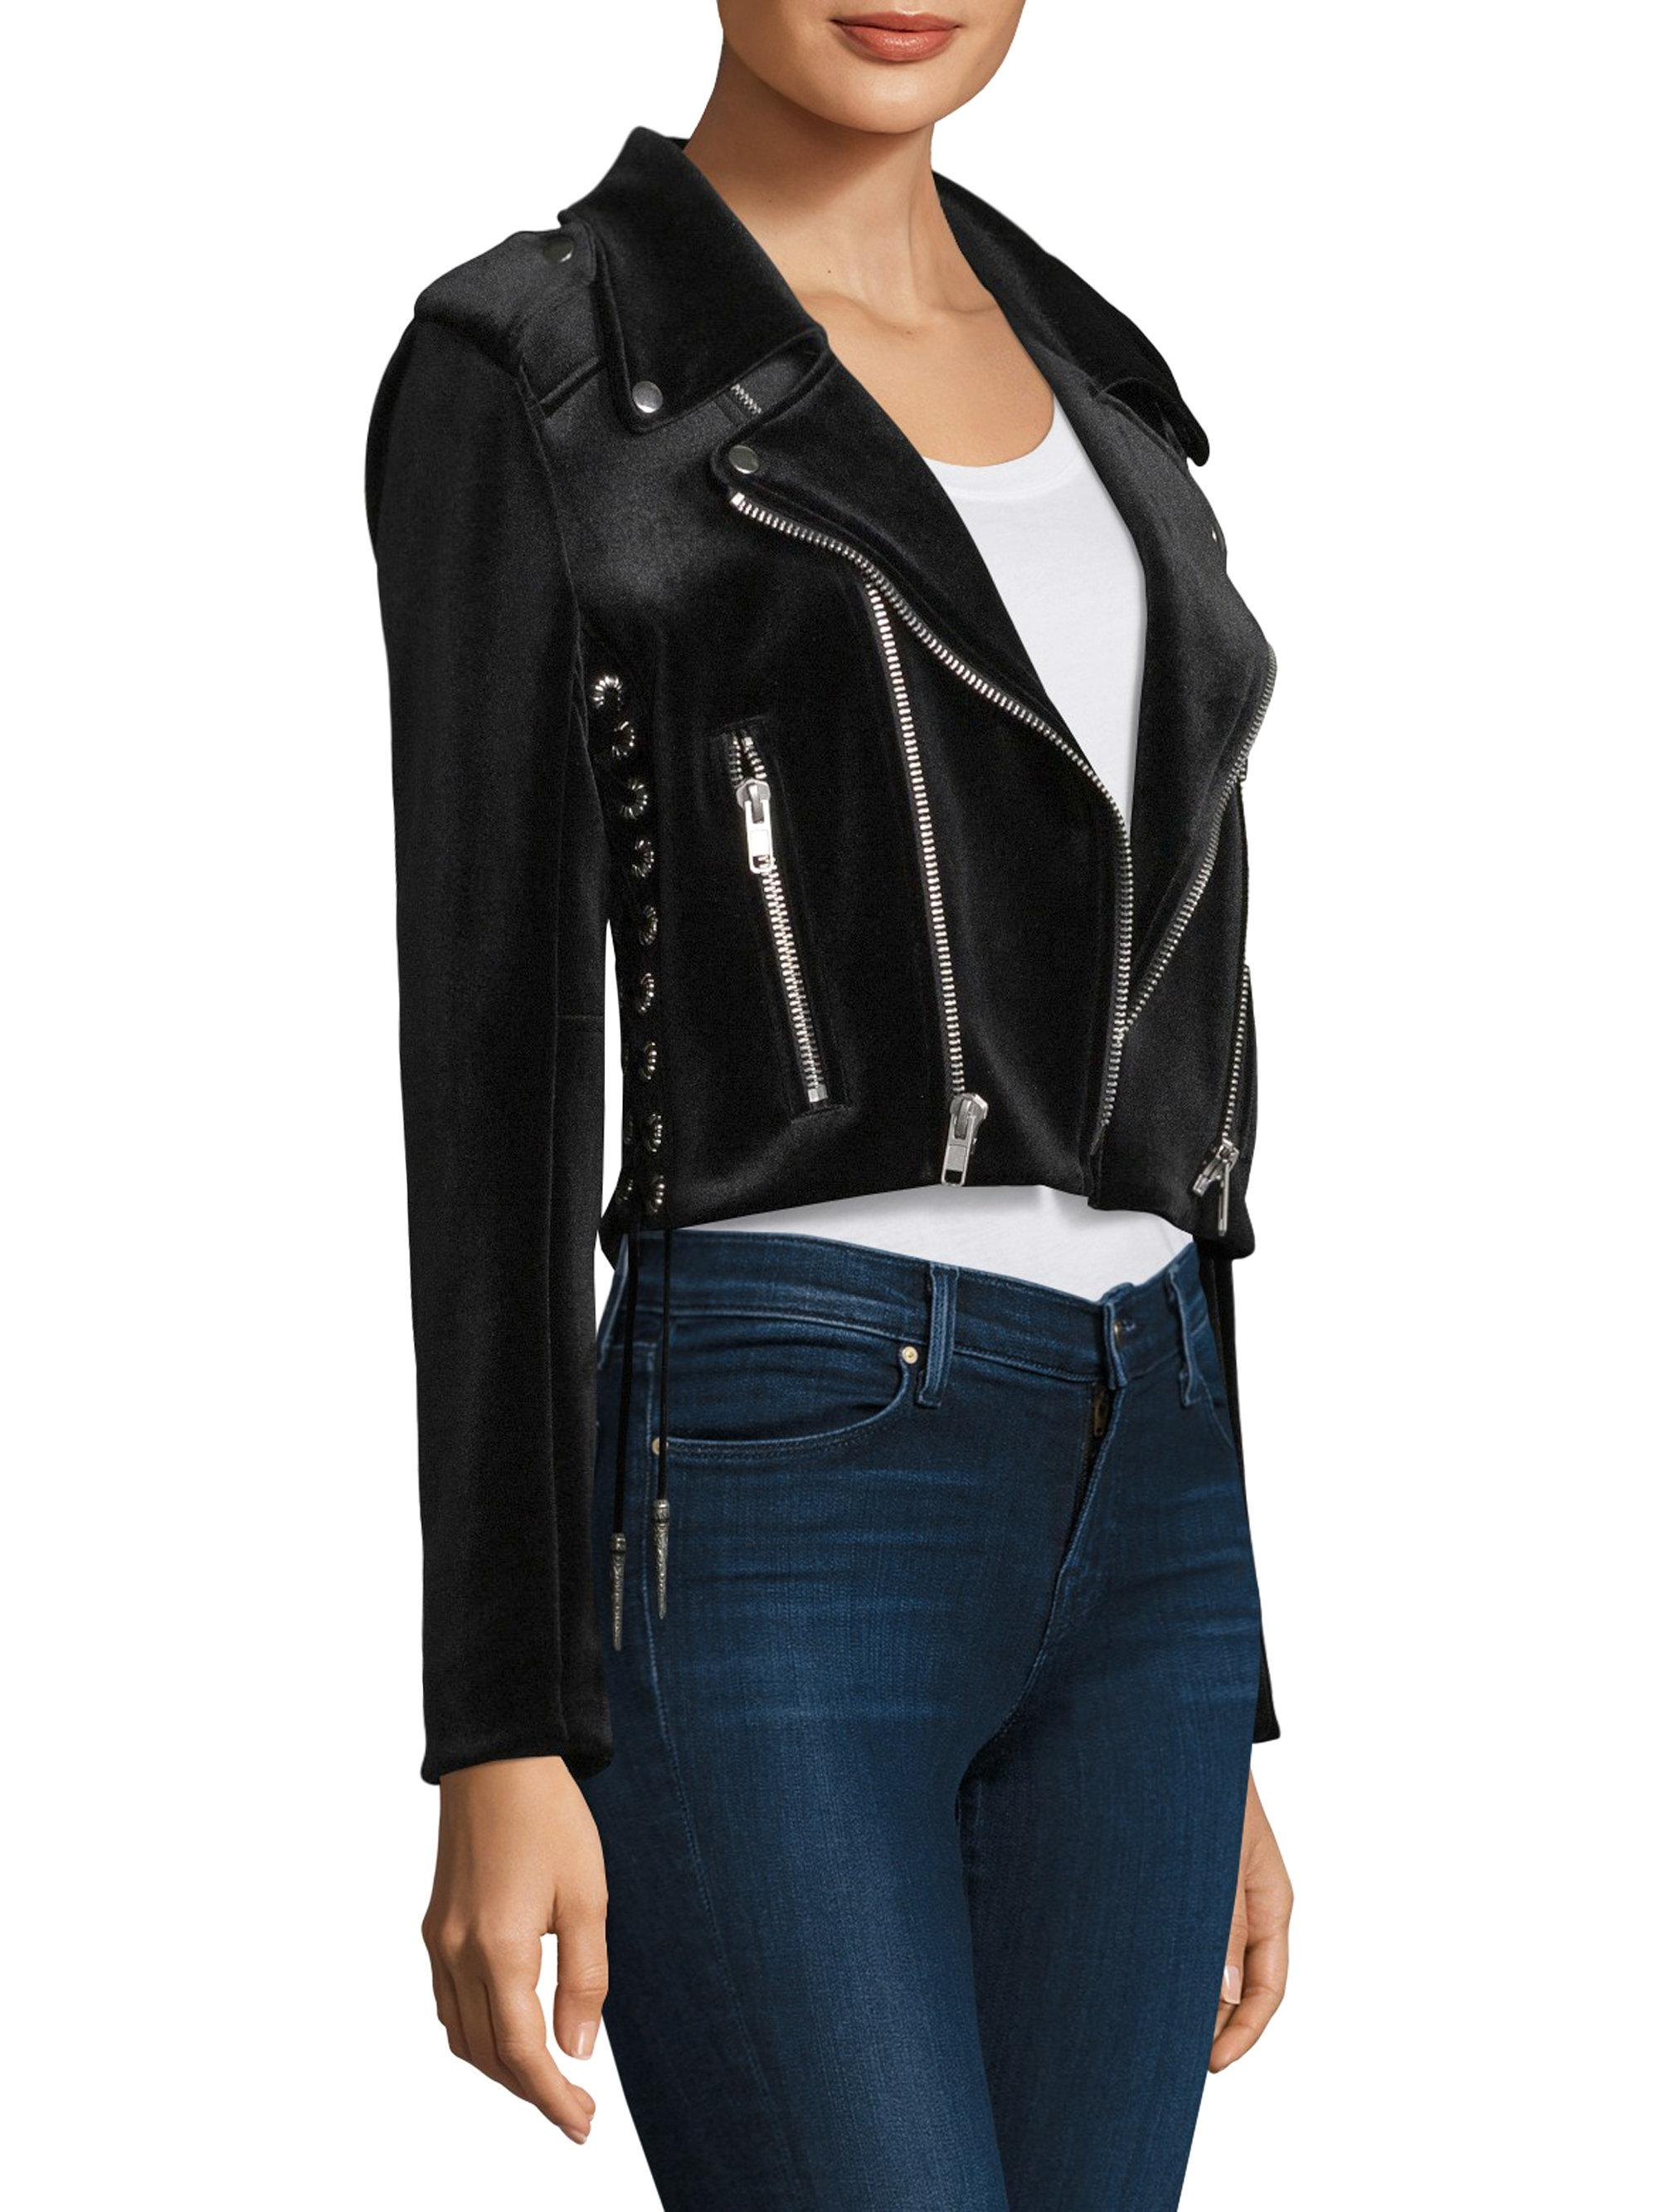 54fe1d2c01 Gallery. Previously sold at: Saks Fifth Avenue · Women's Biker Jackets